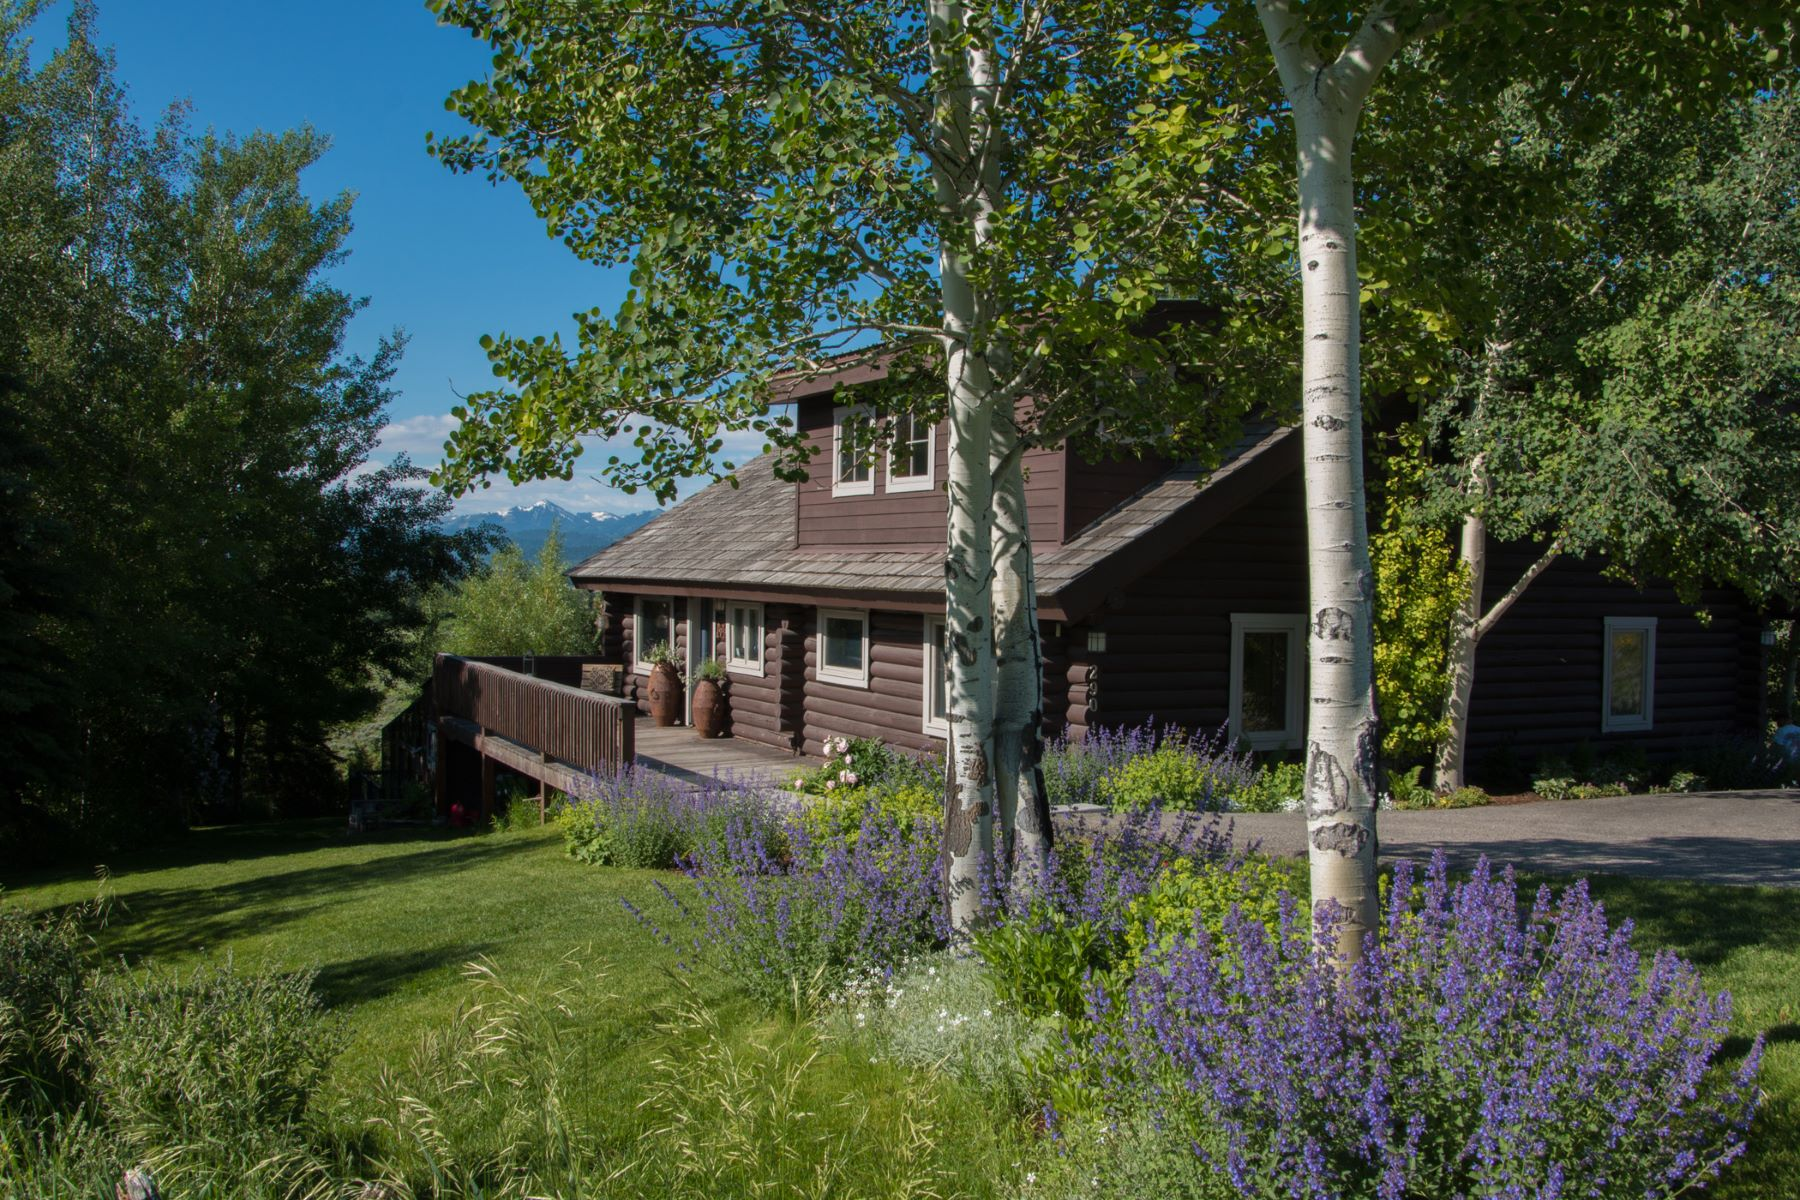 Maison unifamiliale pour l Vente à Charming Jackson Home with a View 290 Bar Y Road, Jackson, Wyoming, 83001 Jackson Hole, États-Unis